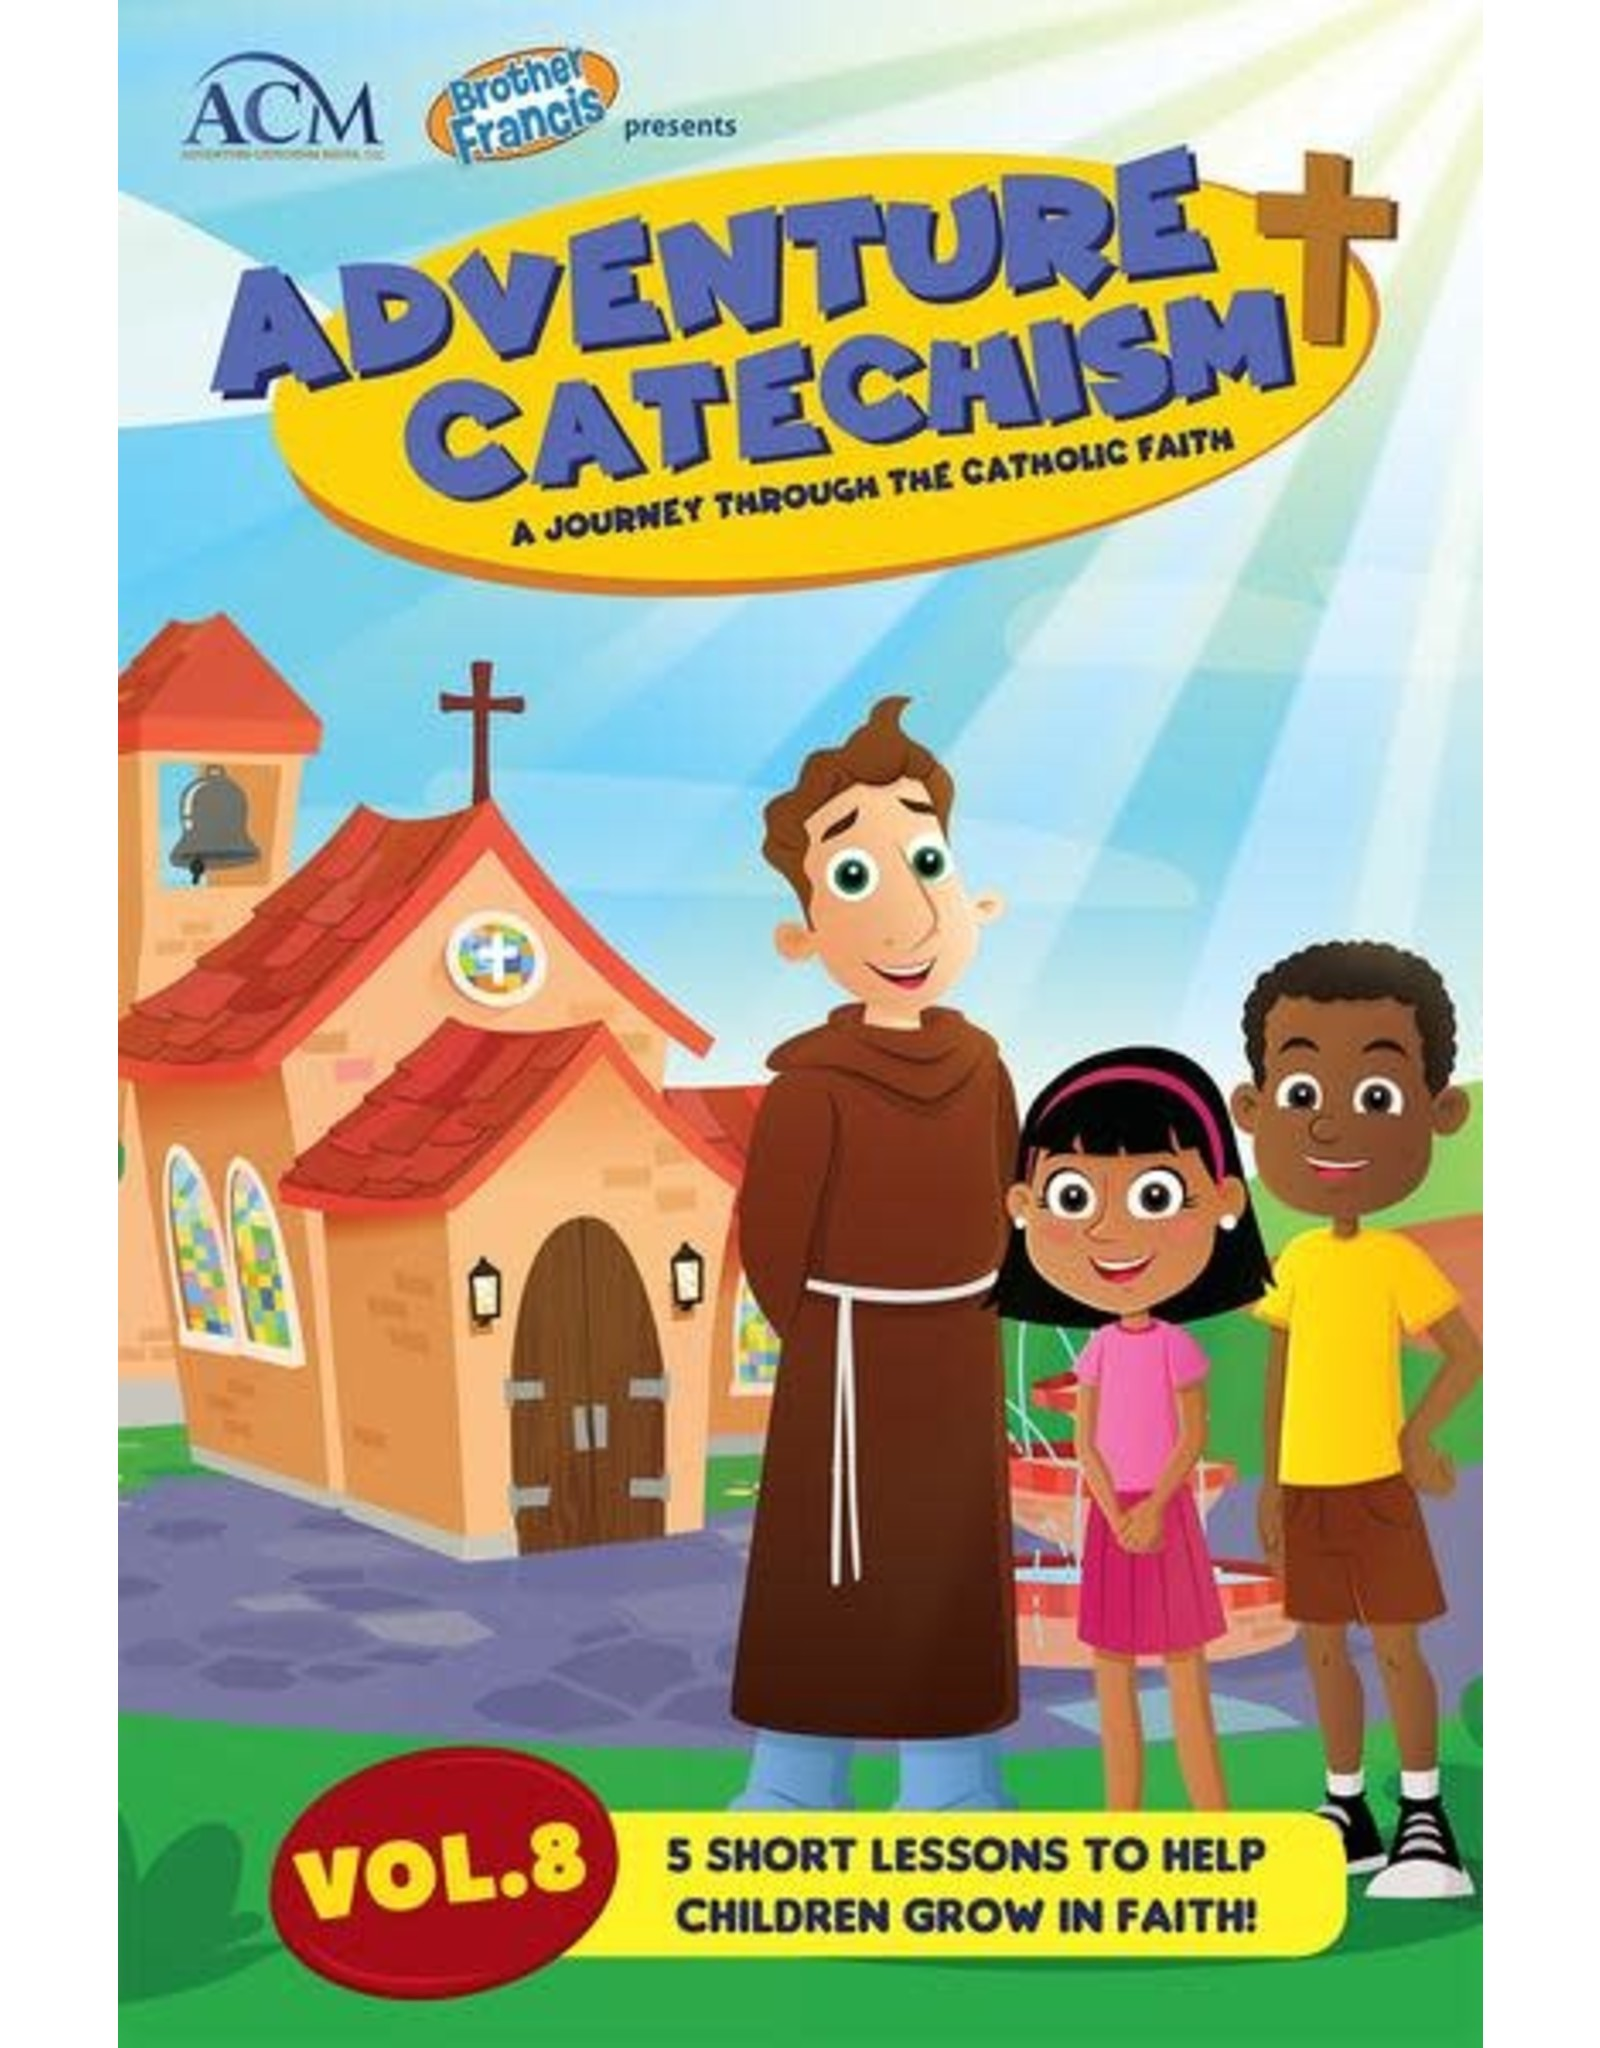 Brother Francis Adventure Catechism Reader Volume 8